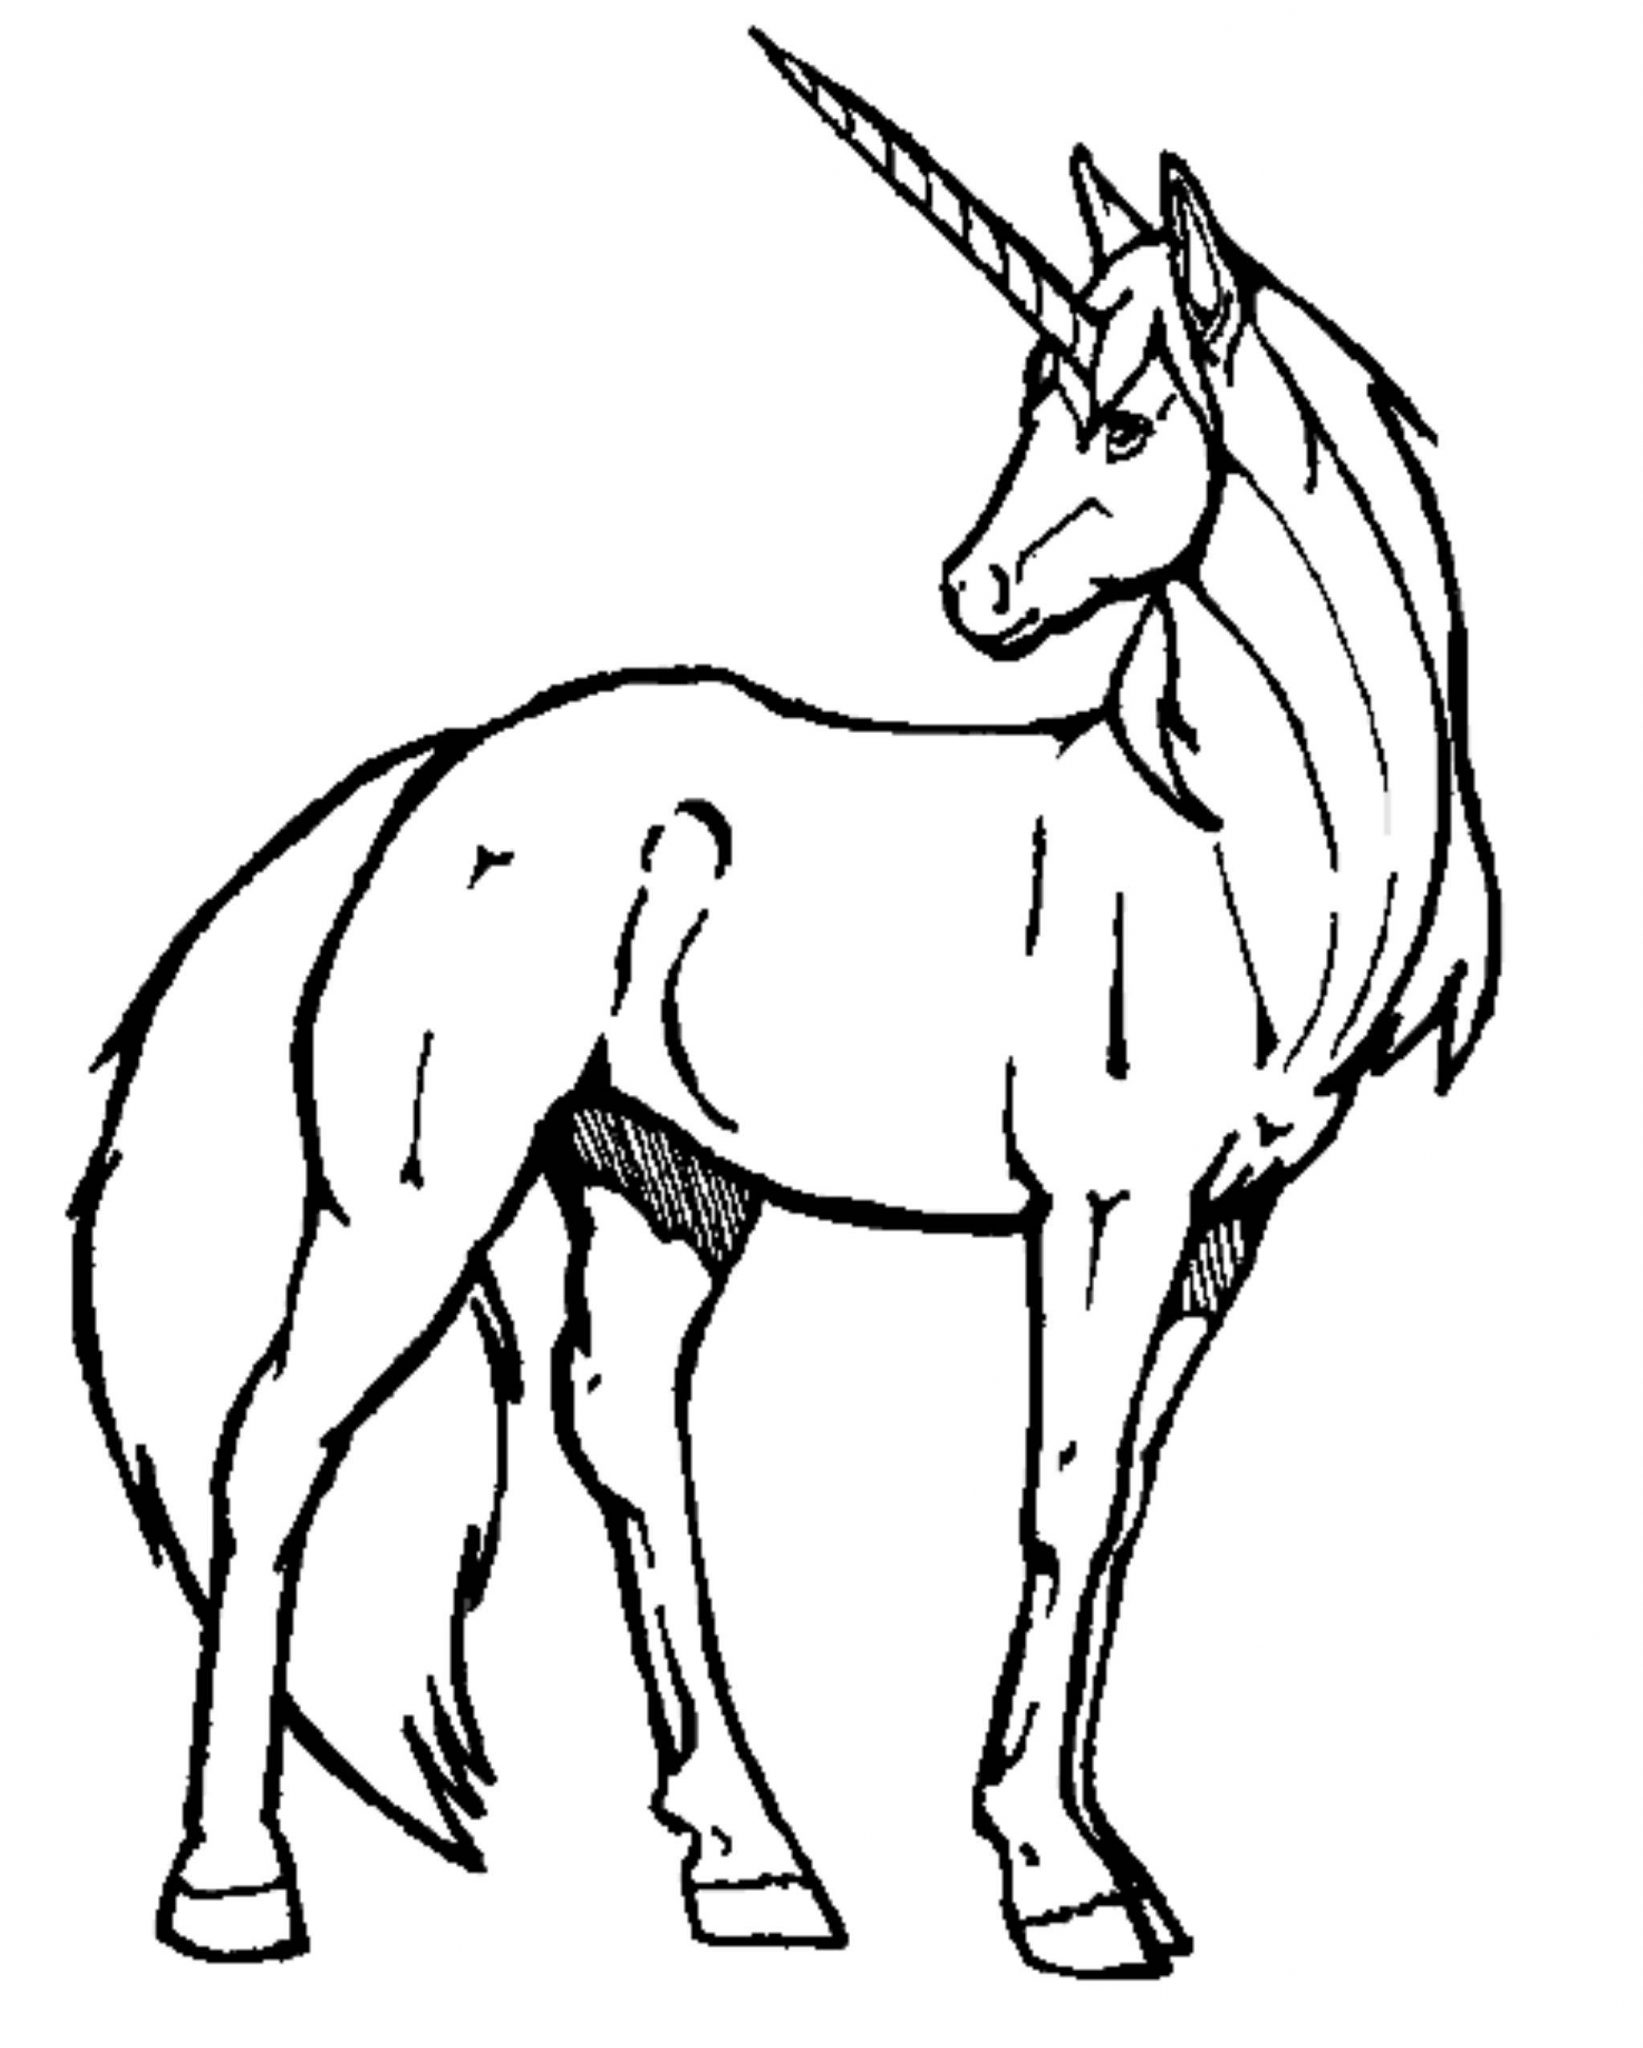 coloring worksheets unicorn unicorns free colouring pages worksheets coloring unicorn